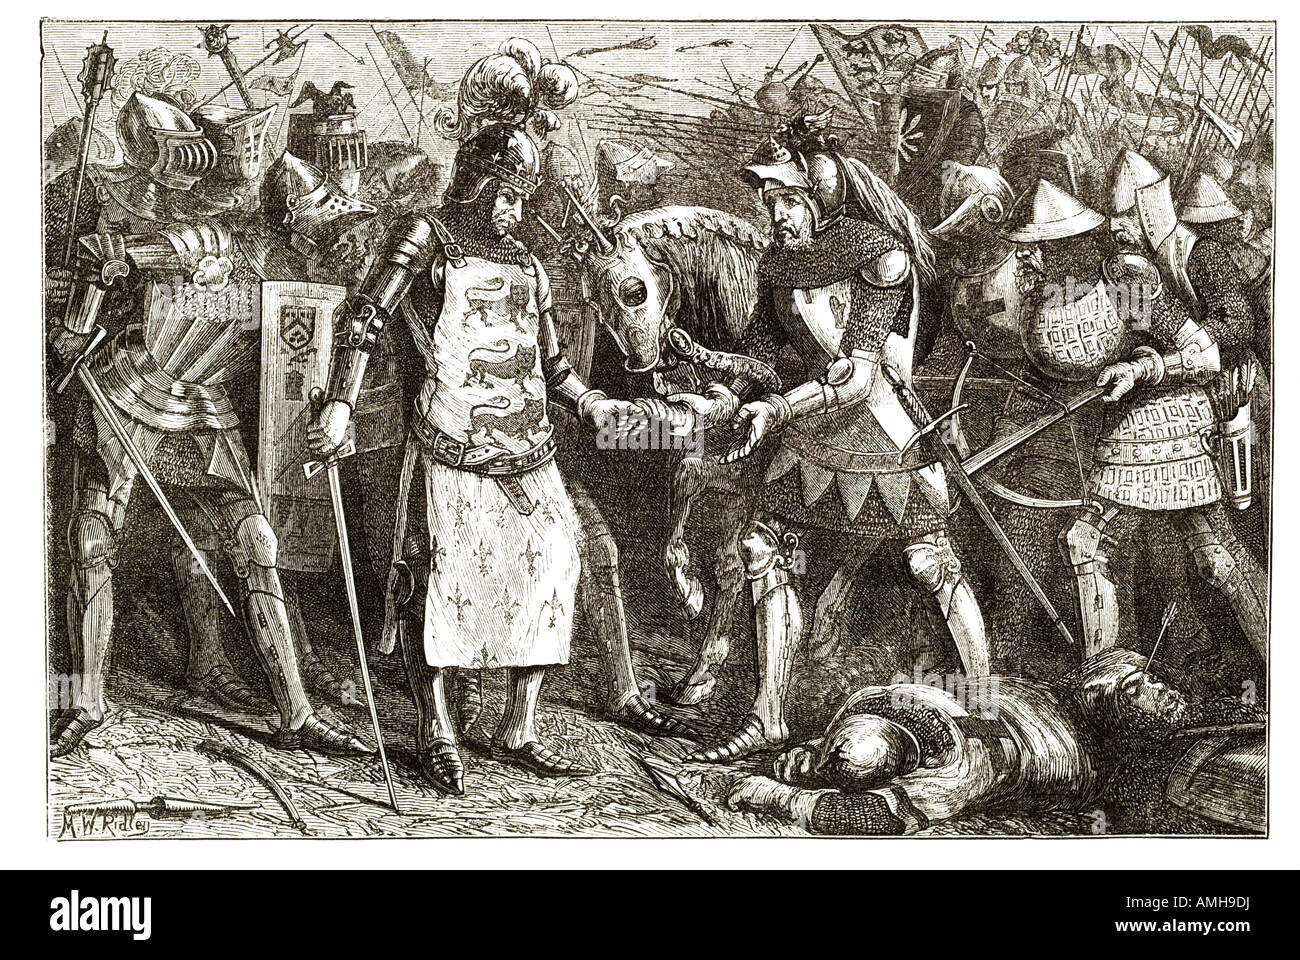 surrender of king of france at poictiers knight armour field battle defeat cross bow sword foot soldier war horse Stock Photo